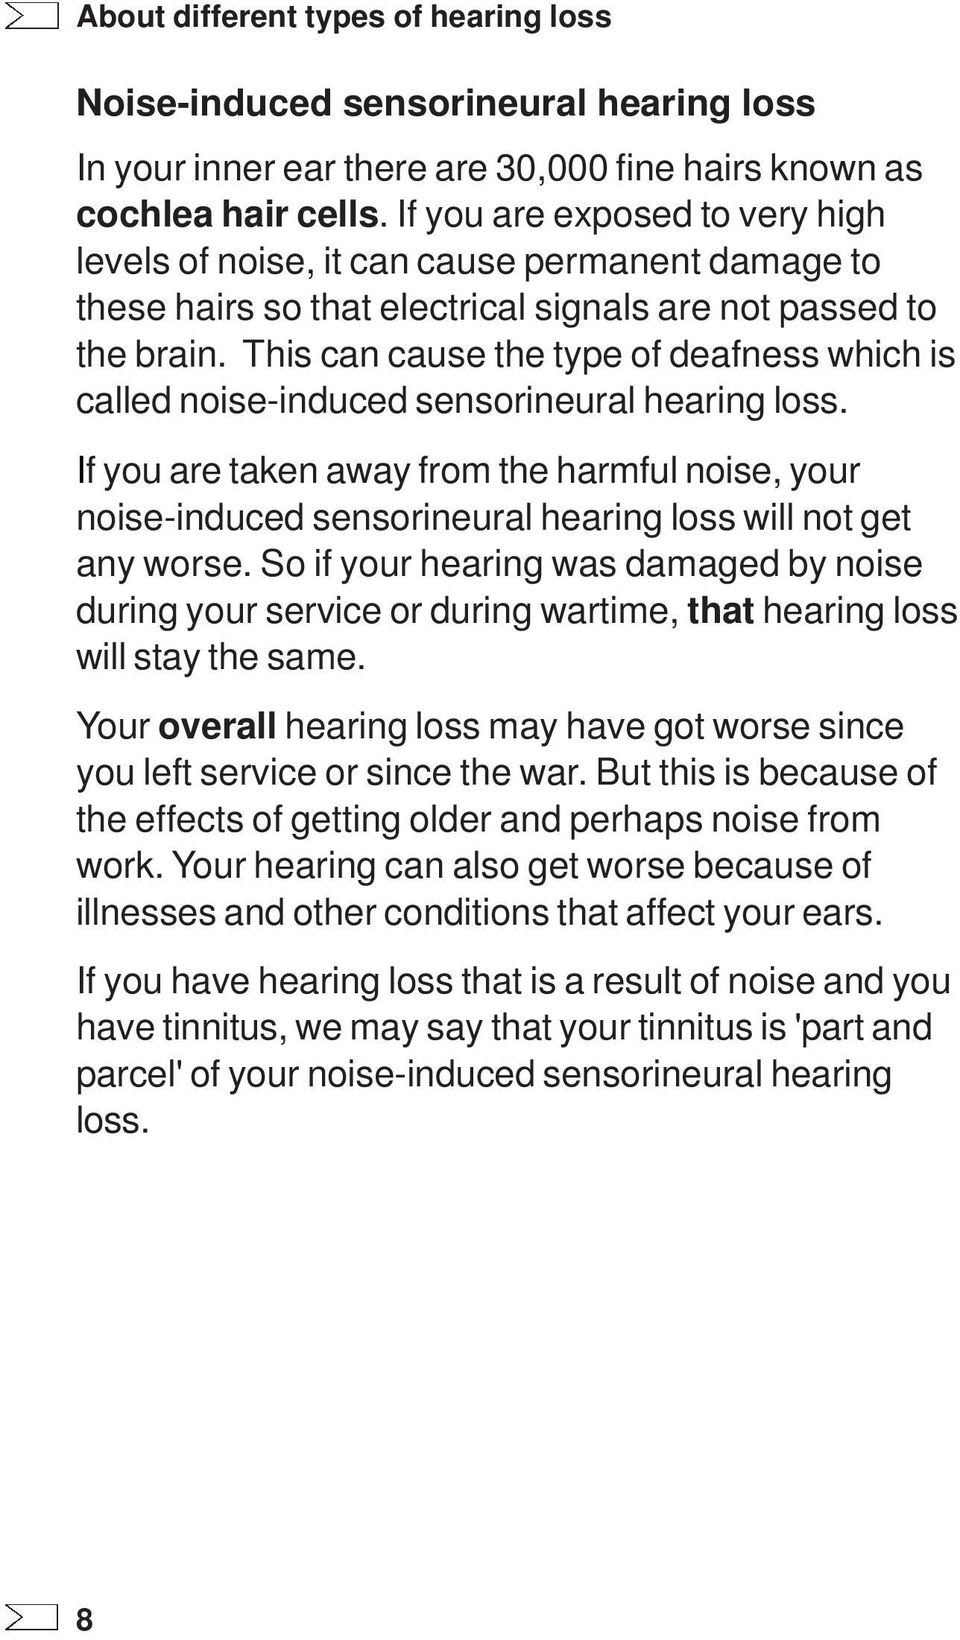 This can cause the type of deafness which is called noise-induced sensorineural hearing loss.